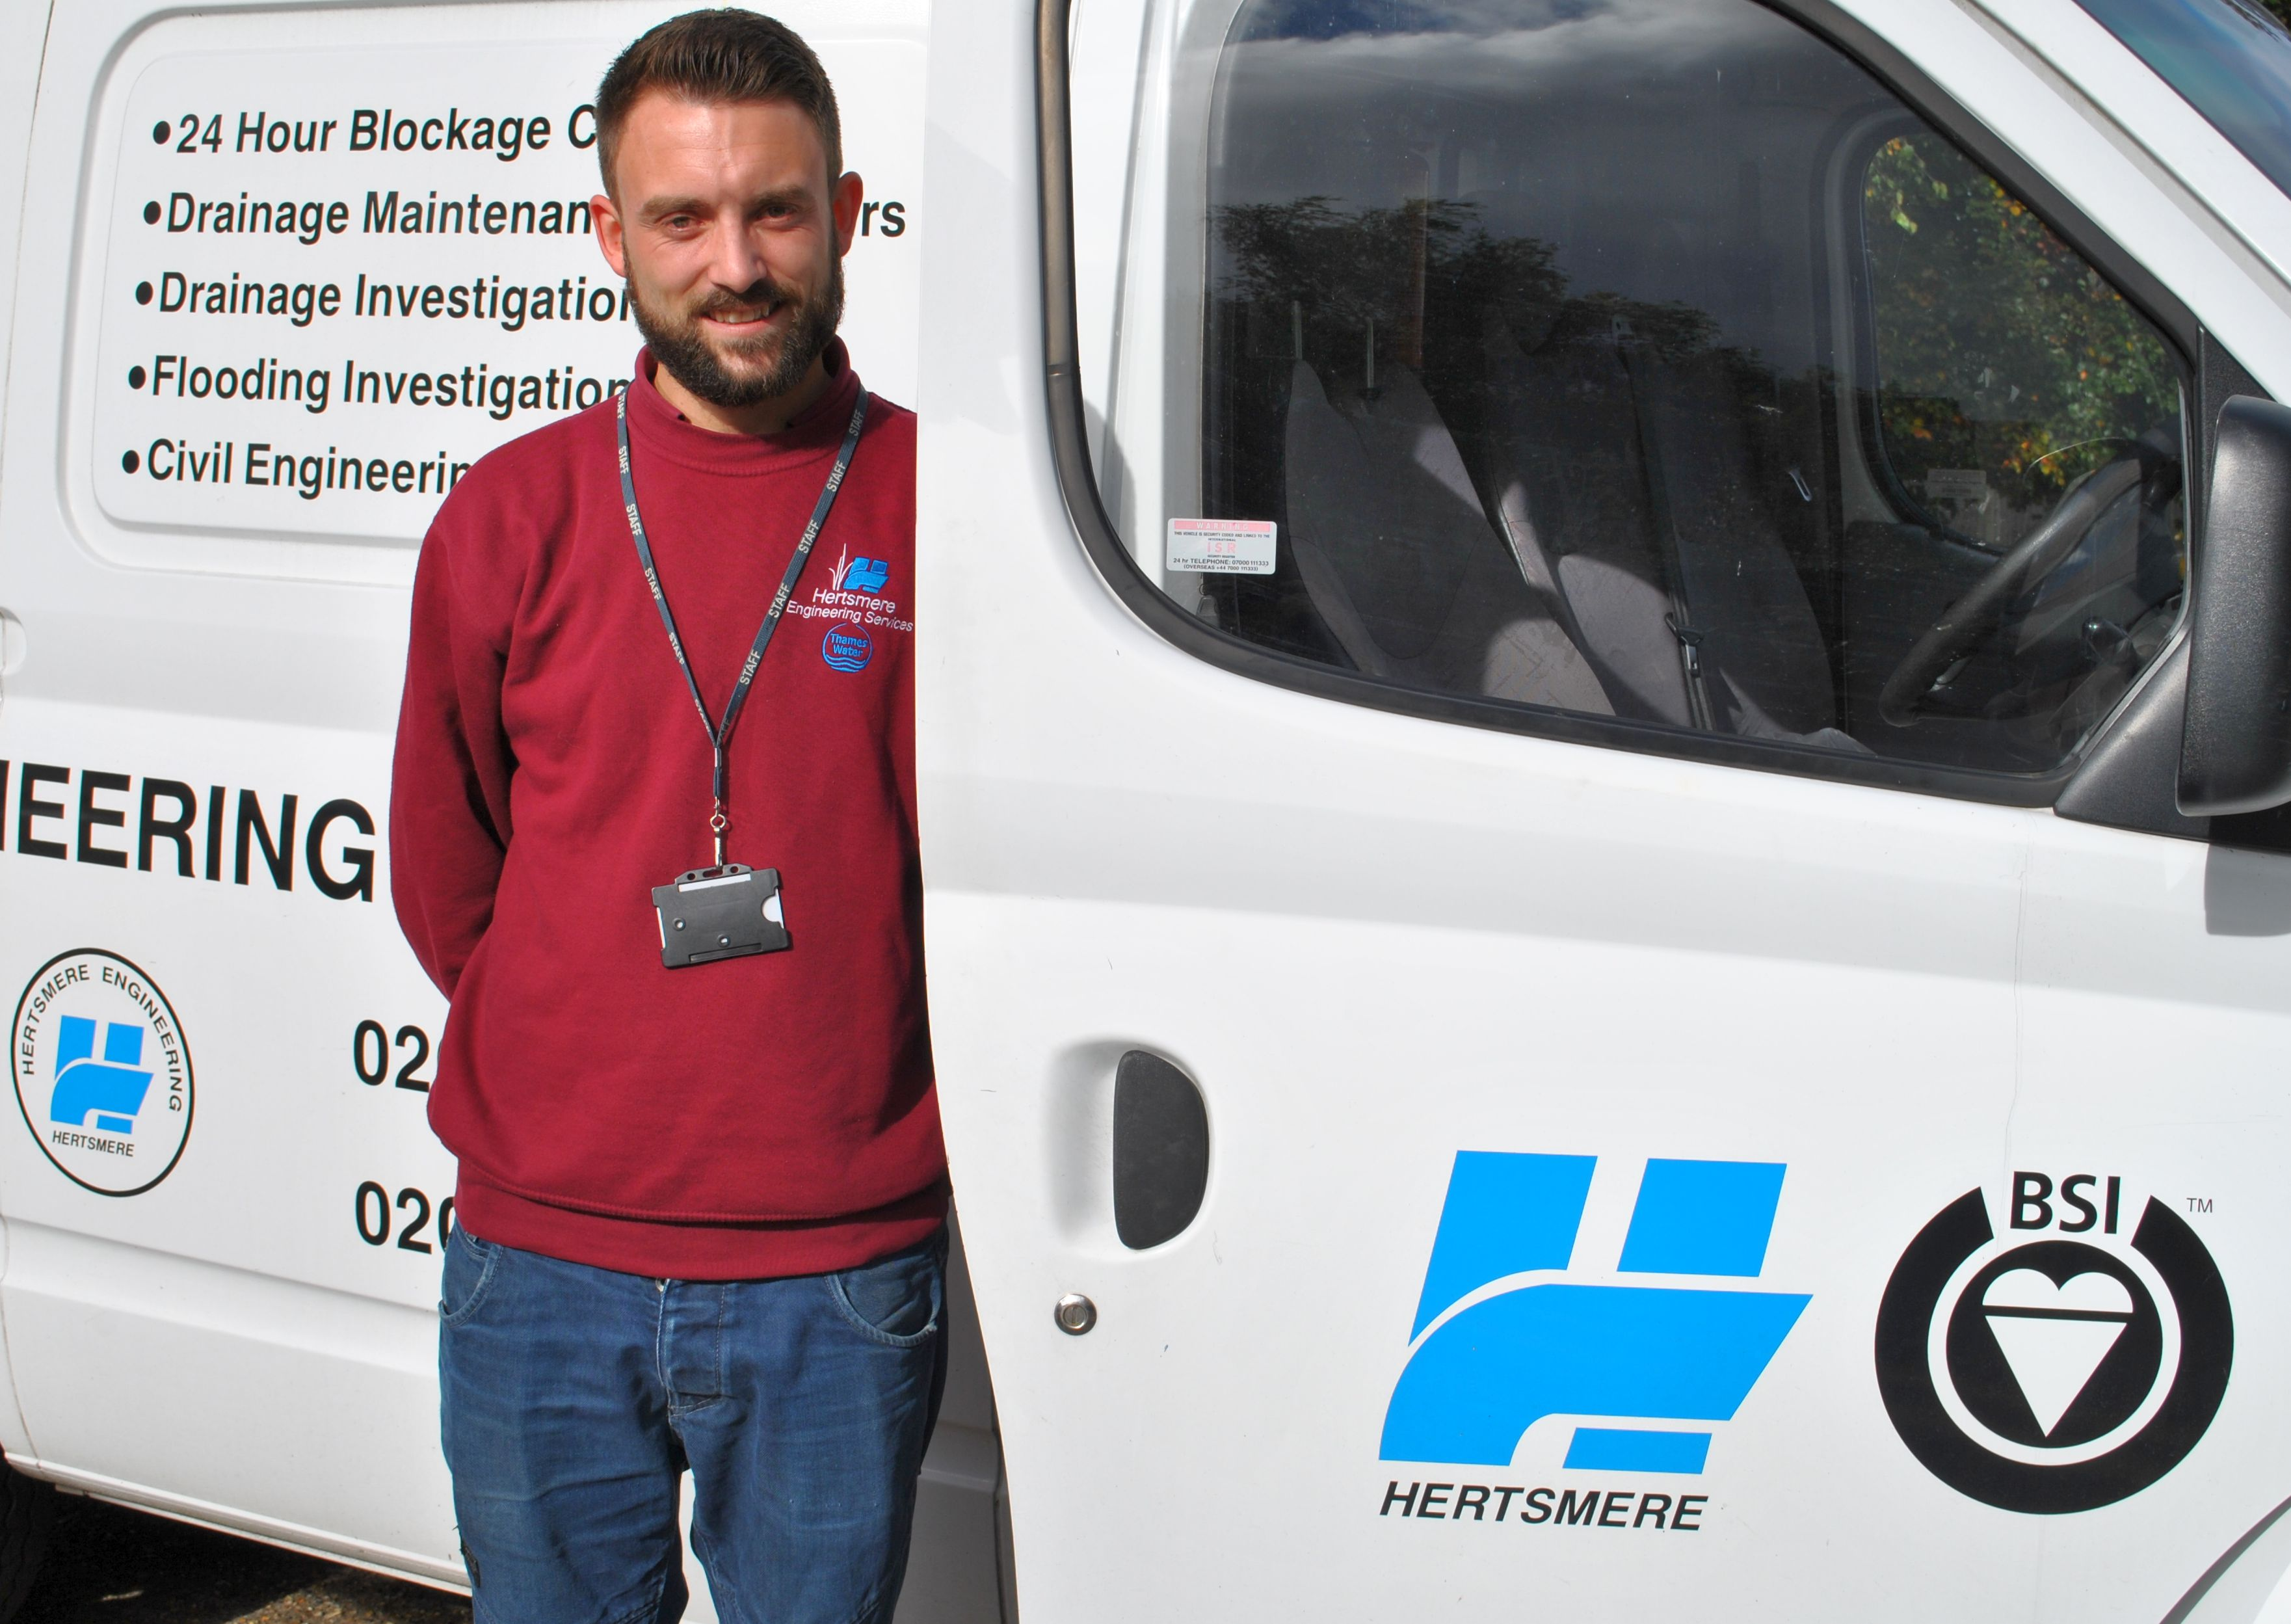 Hertsmere engineer goes above and beyond